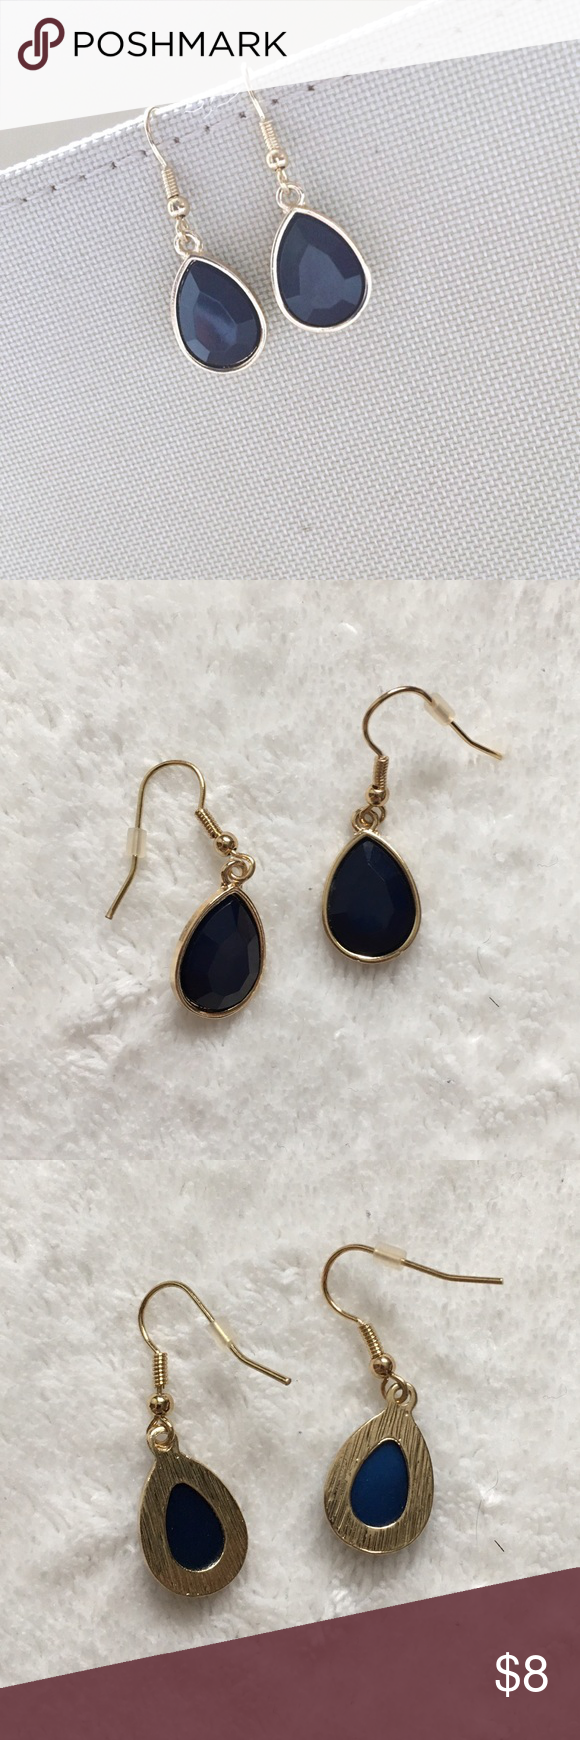 3 For $20 💗 Teardrop Earrings Old Navy Faux Gold And Navy Blue Teardrop  Dangle Earrings